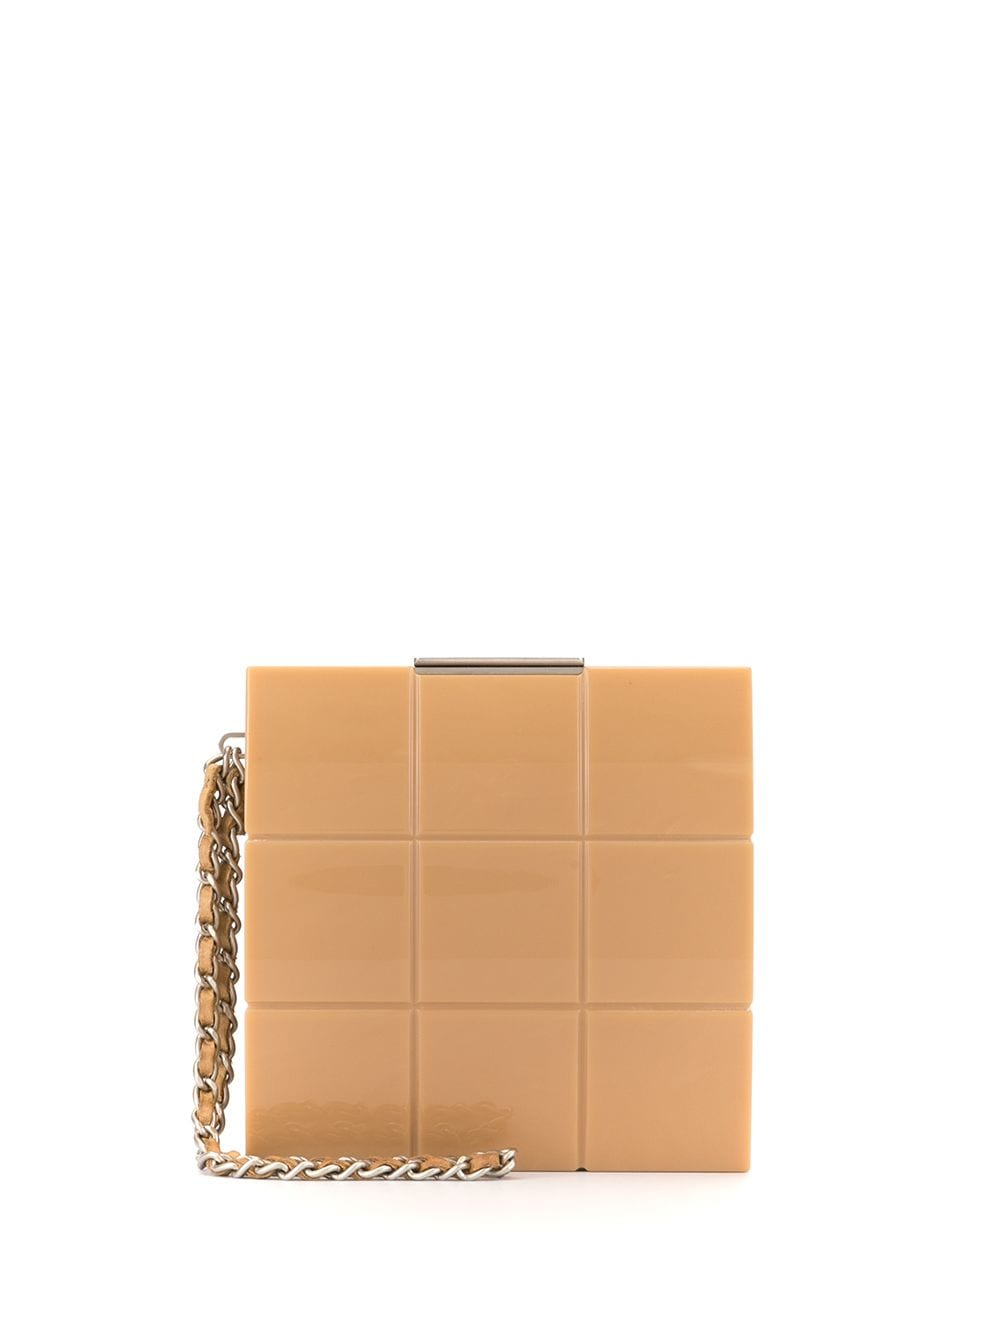 Chanel Pre-Owned Chocolate Bar Clutch - Braun